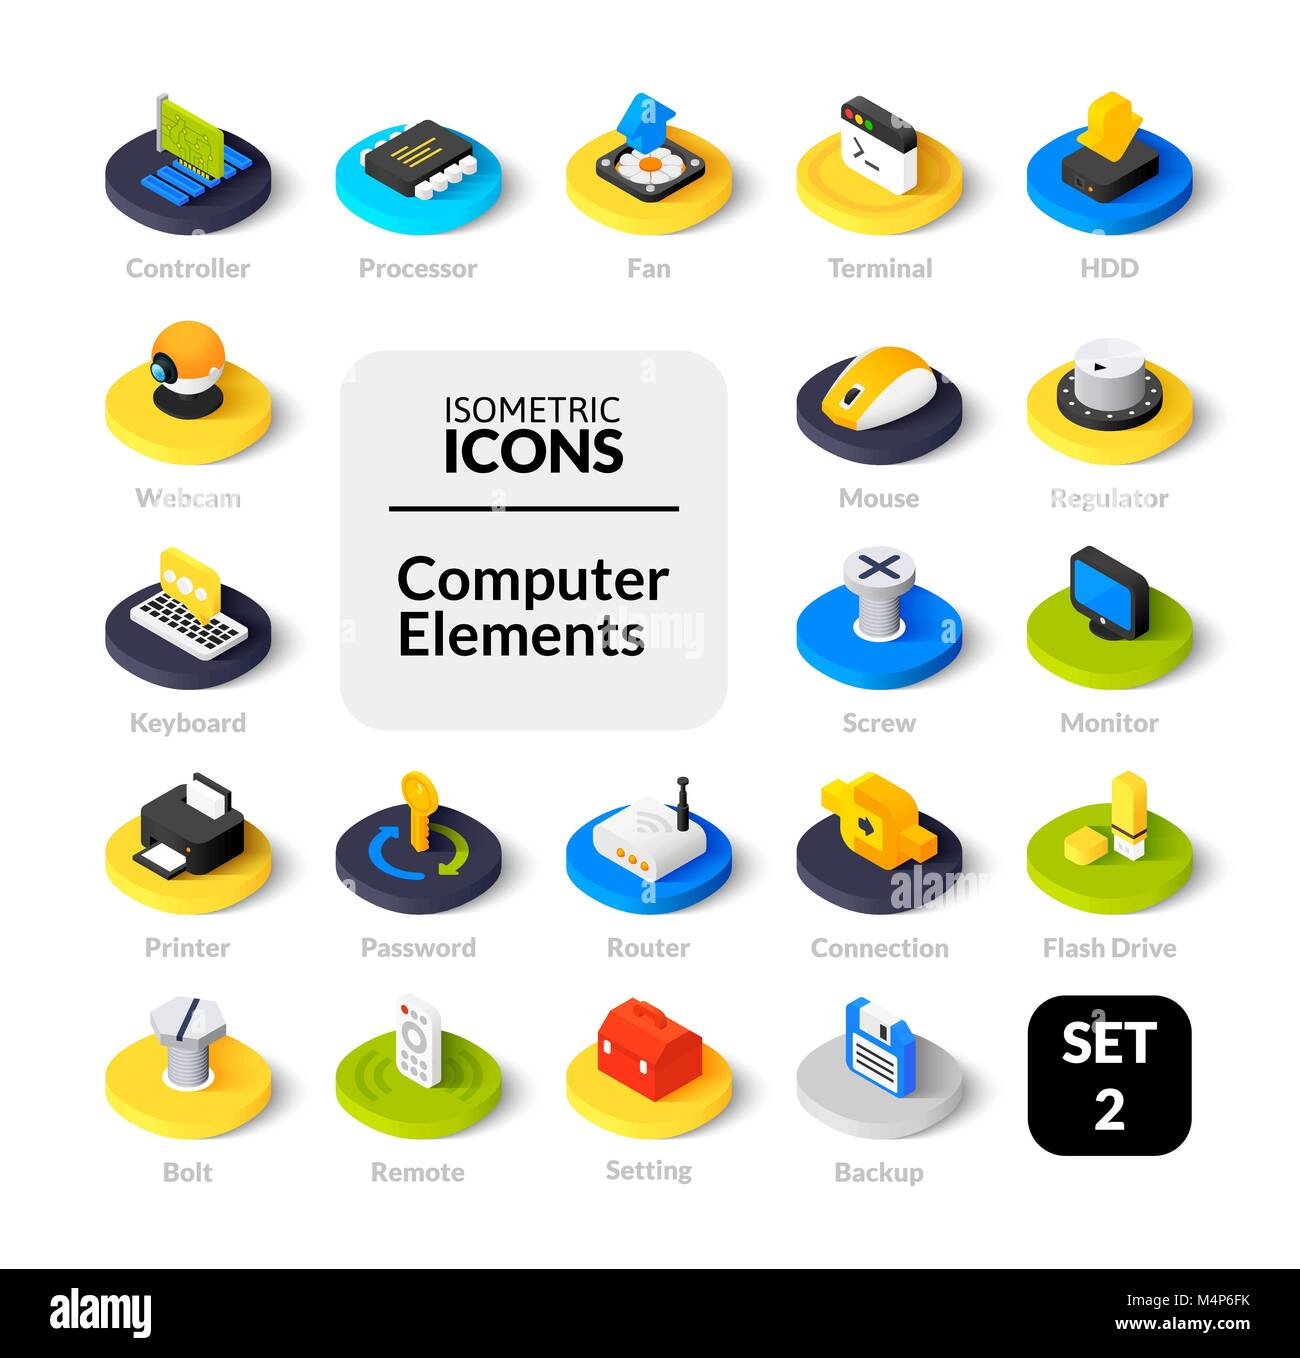 Color icons set in flat isometric illustration style, vector collection Stock Vector